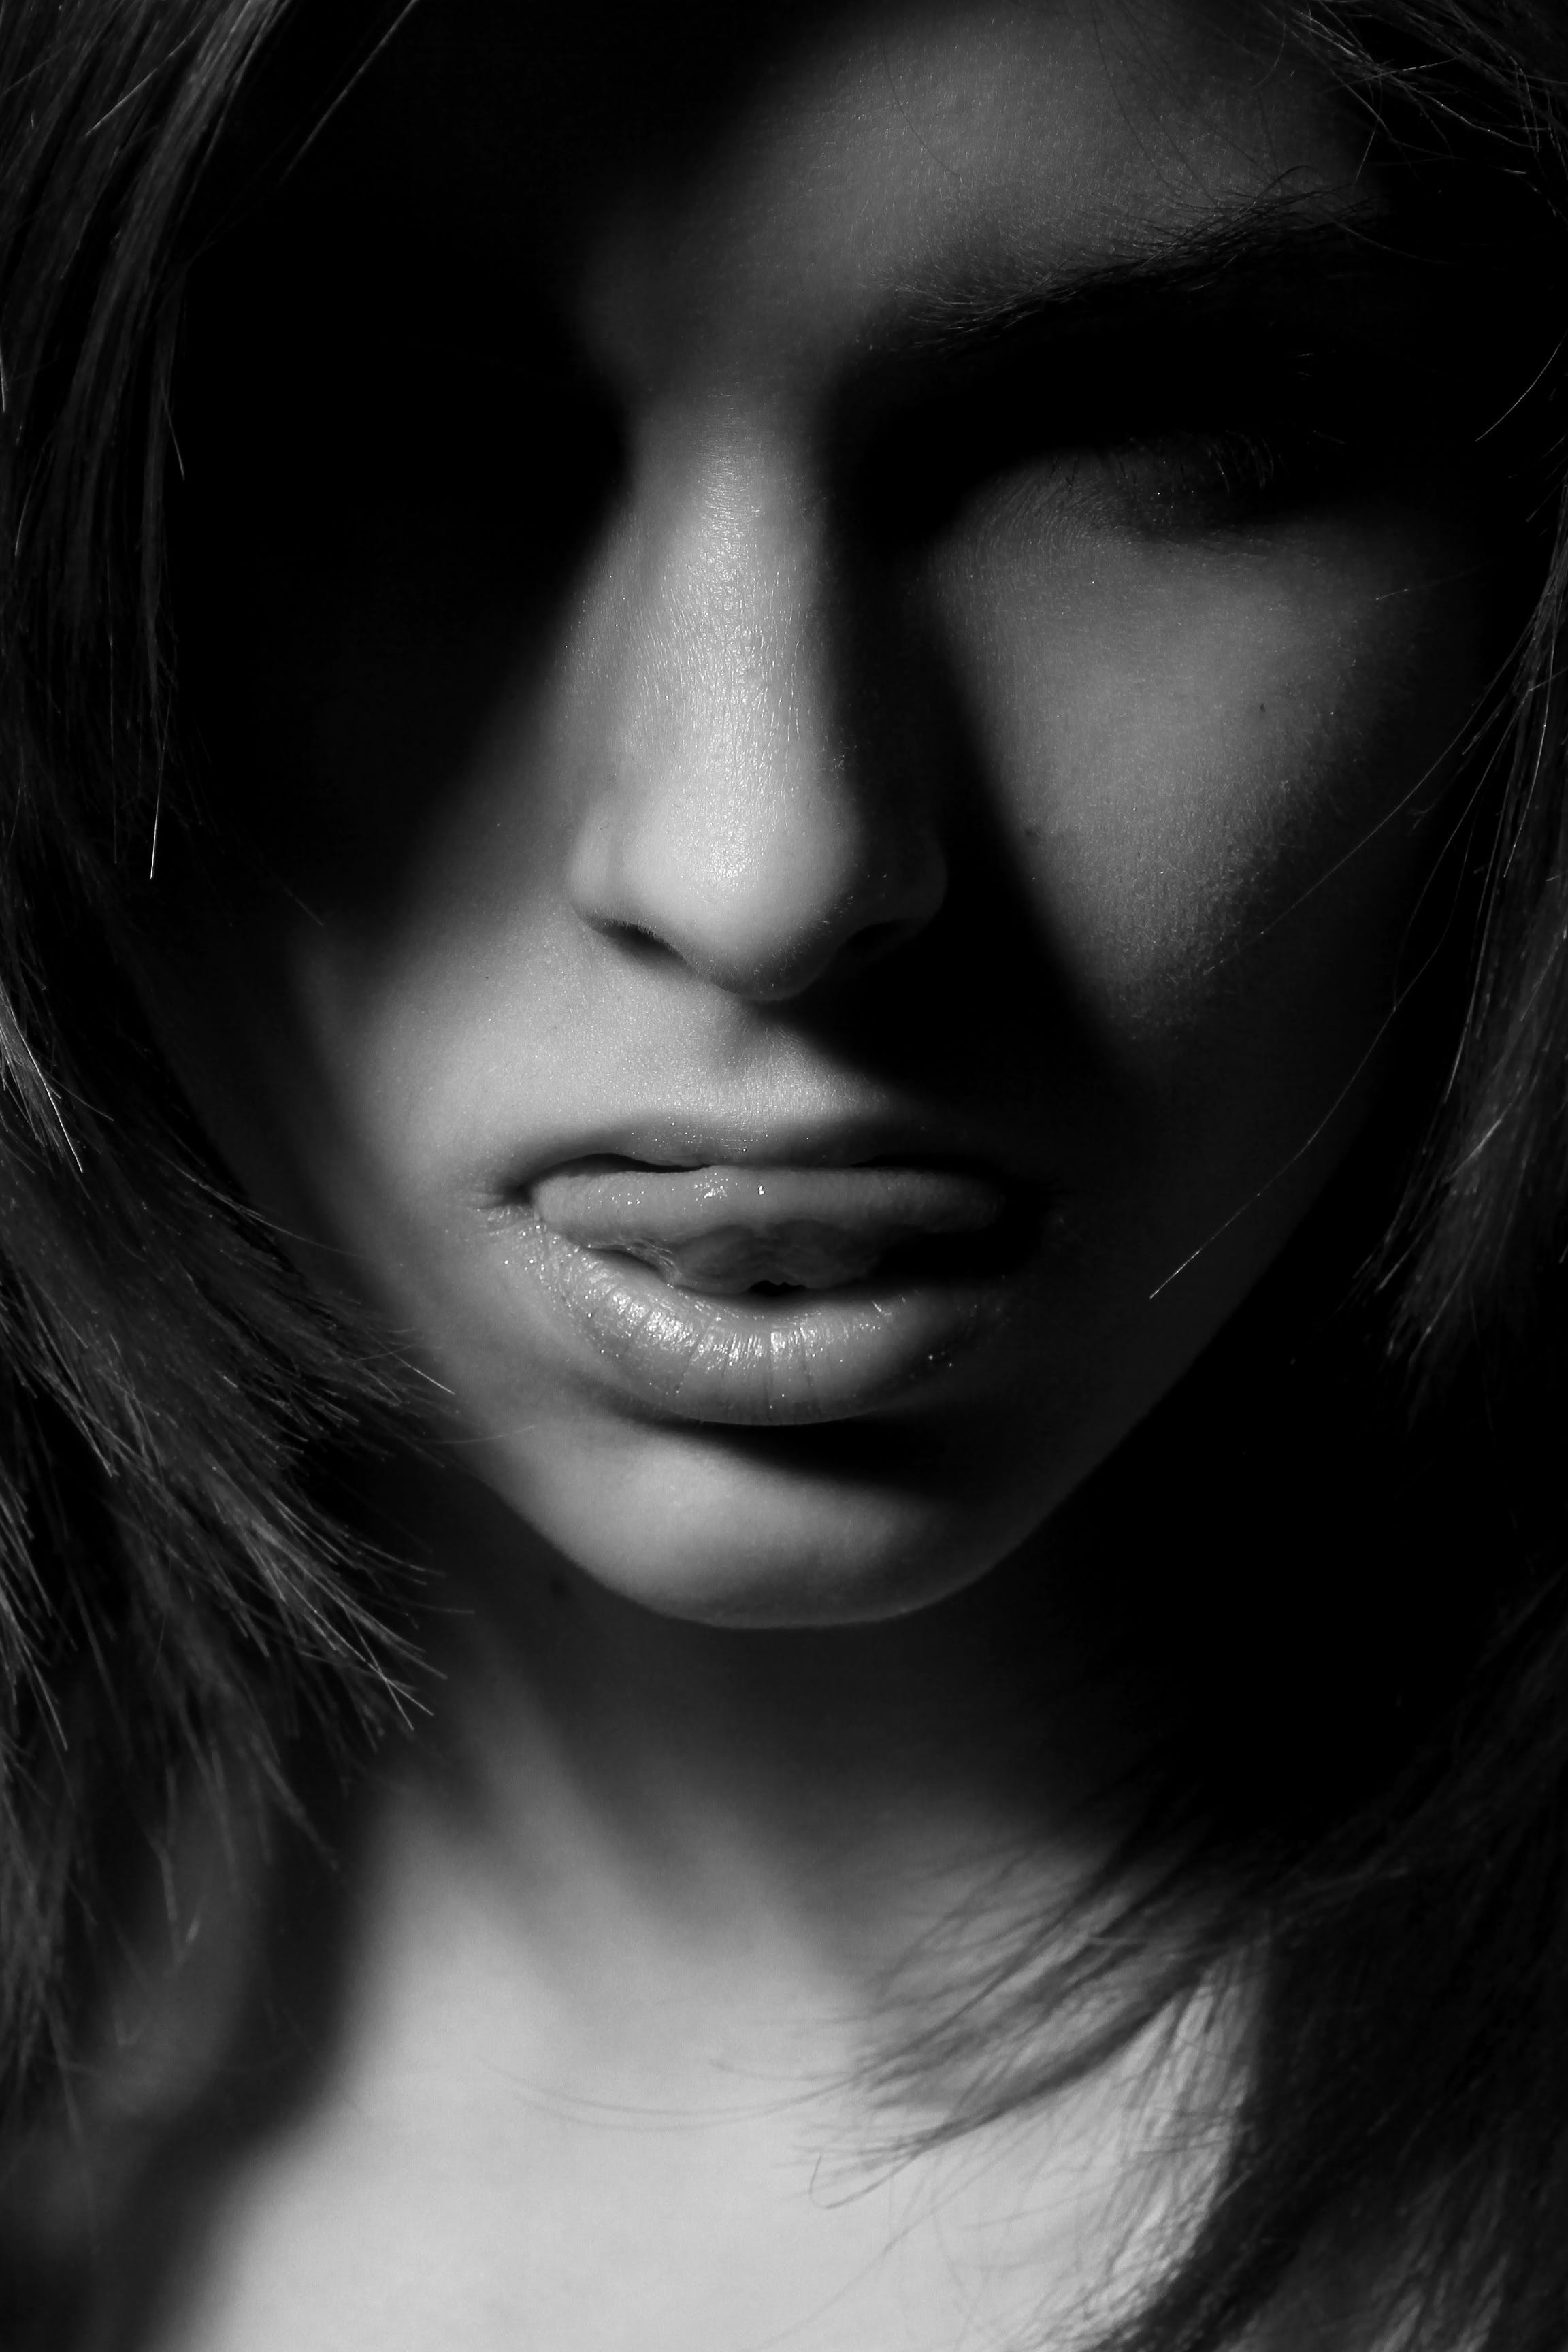 Grayscale Photography of Woman Sticking Her Tongue Out